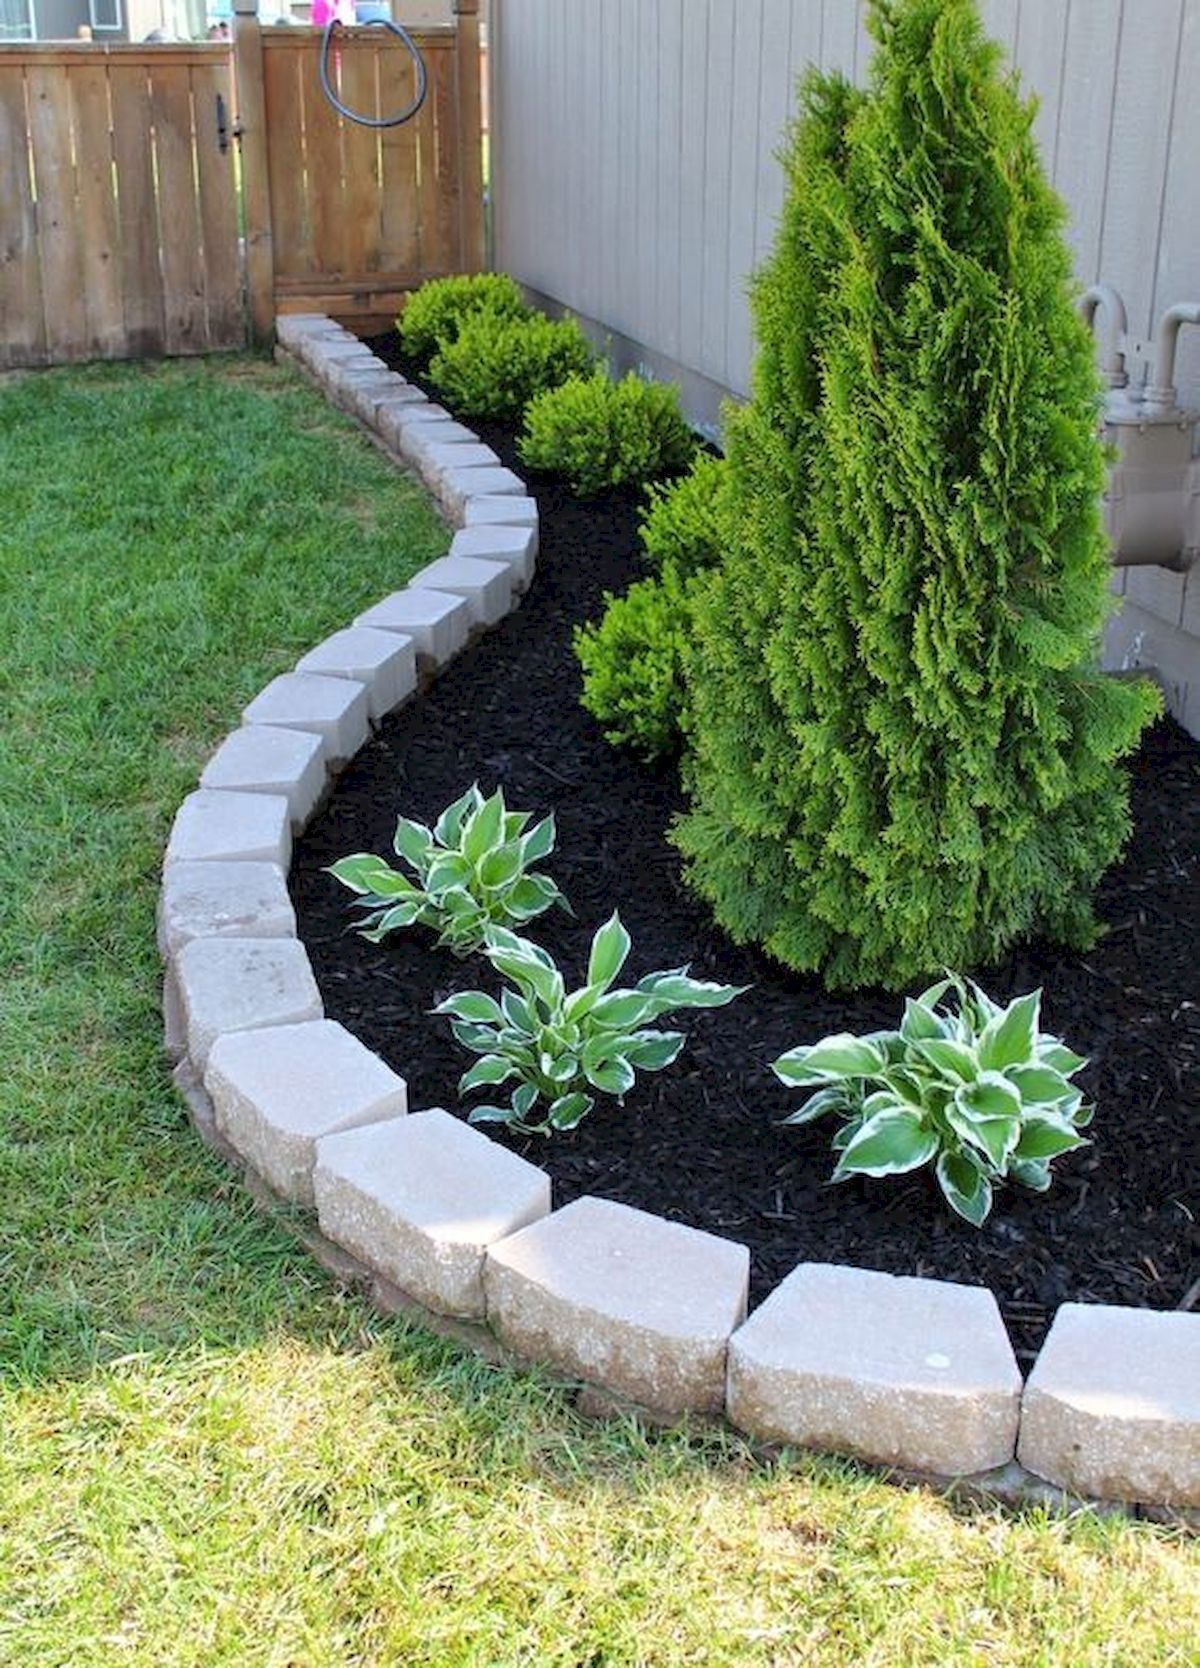 40 Beautiful Garden Decorating Ideas The Right Garden Decor Ideas Can Really Make Your In 2020 Front Garden Landscape Front Yard Landscaping Design Easy Landscaping